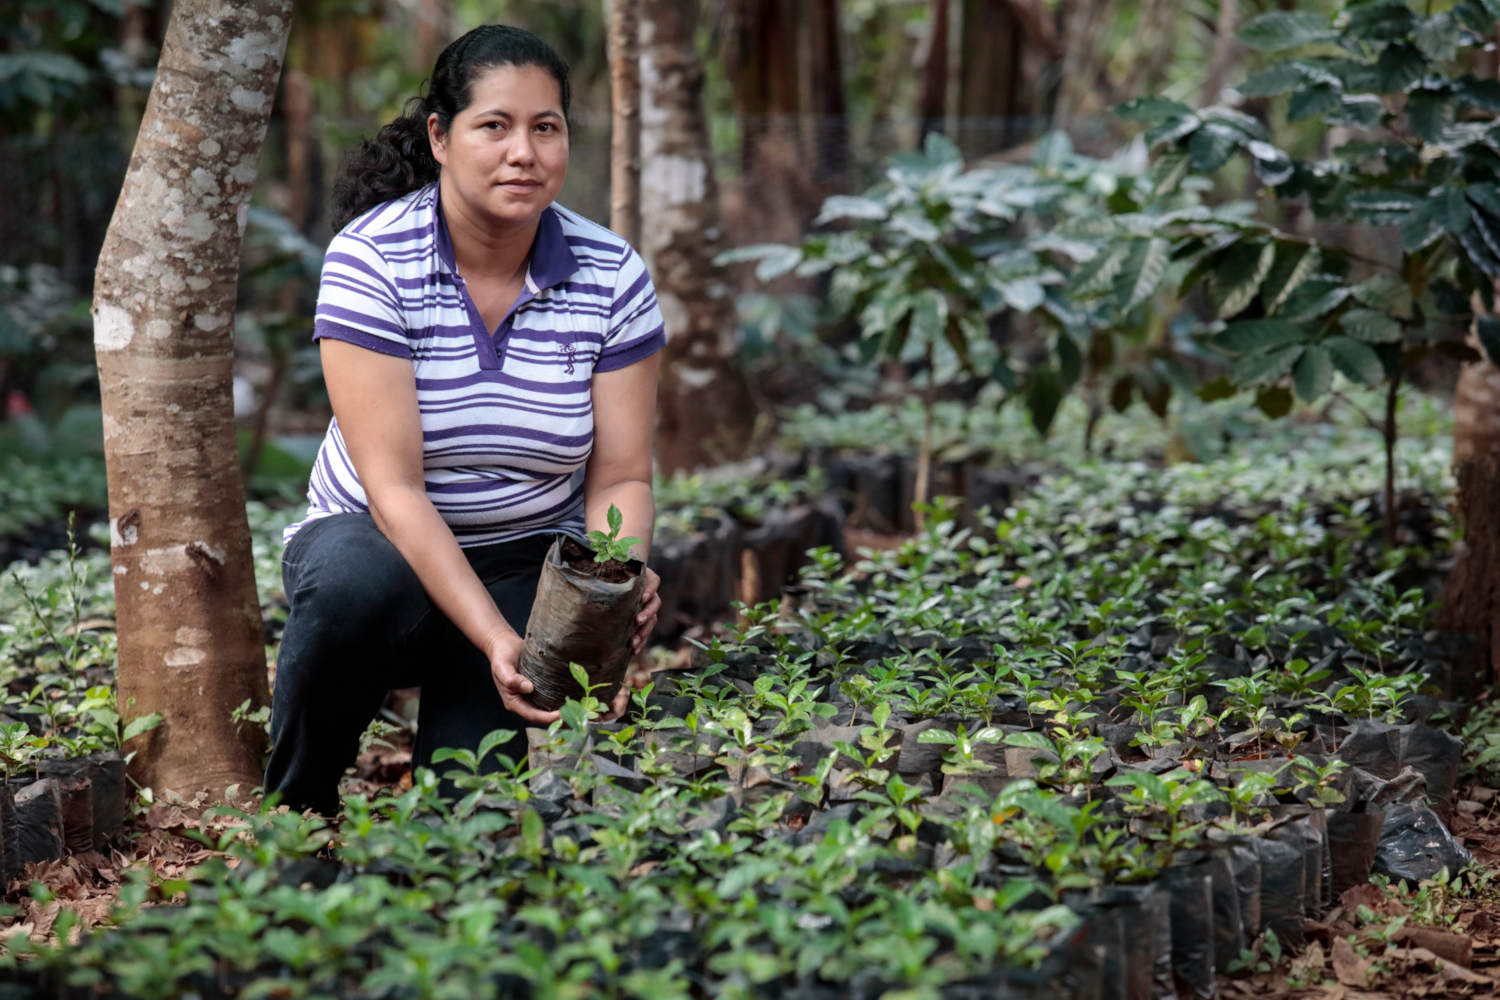 Oneida Gómez, 30, shows her coffee plant nursery she has planted with the help of Blue Harvest project in Canton Las Quebradas, San Simón municipality, Department of Morazán, El Salvador. Catholic Relief Services through local partner ACUGOLFO has worked with small producers with Blue Harvest project to conserve water in soil and to have better agricultural practices in order to get higher yields. (credits: Maren Barbee / Public domain)